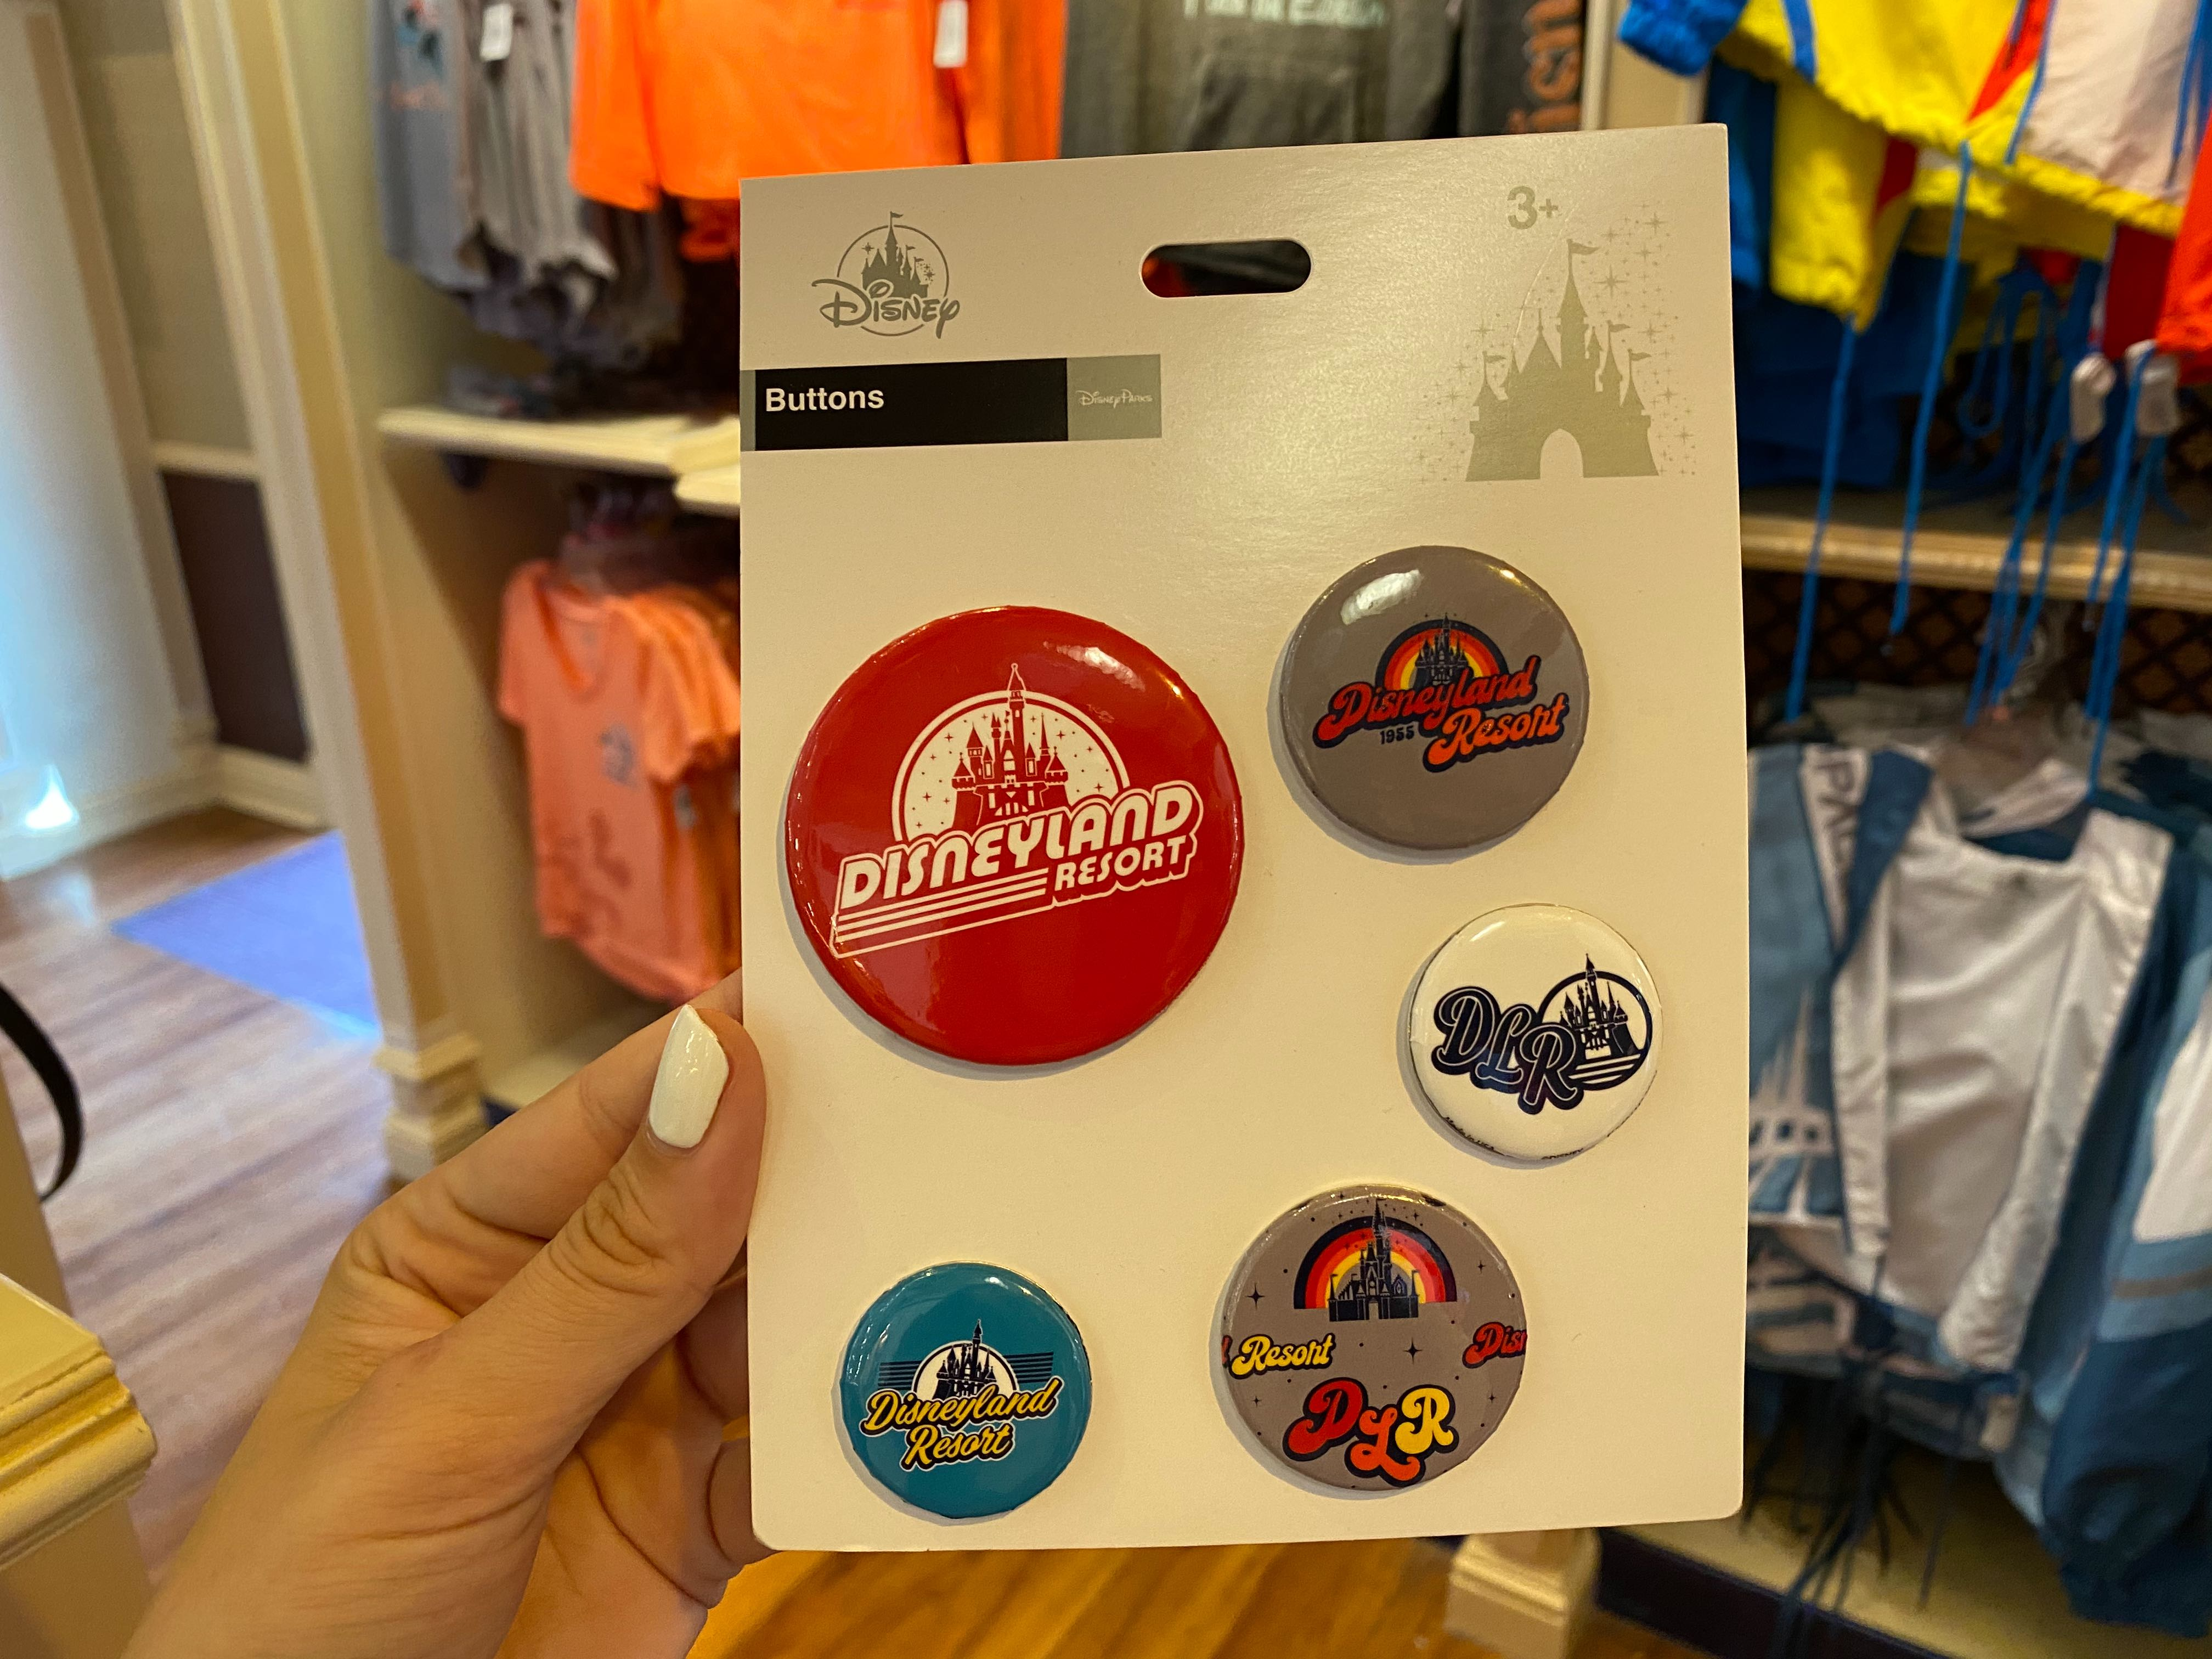 pins-and-shoelace-charms-disneyland-01-30-2020-2.jpg